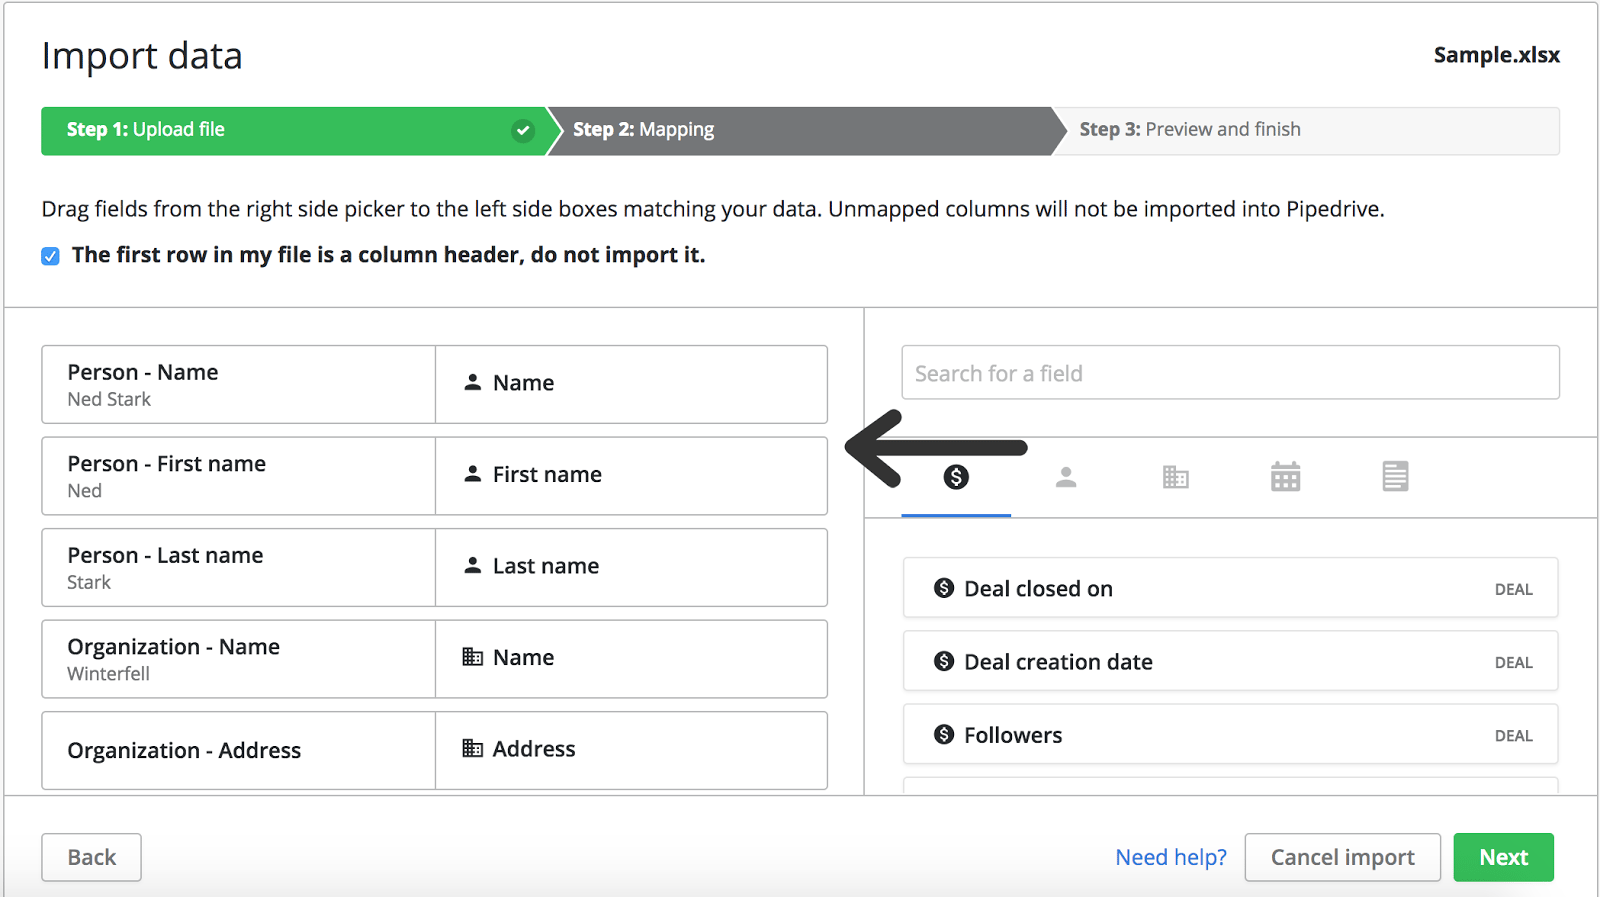 Mapping existing contact data in Pipedrive